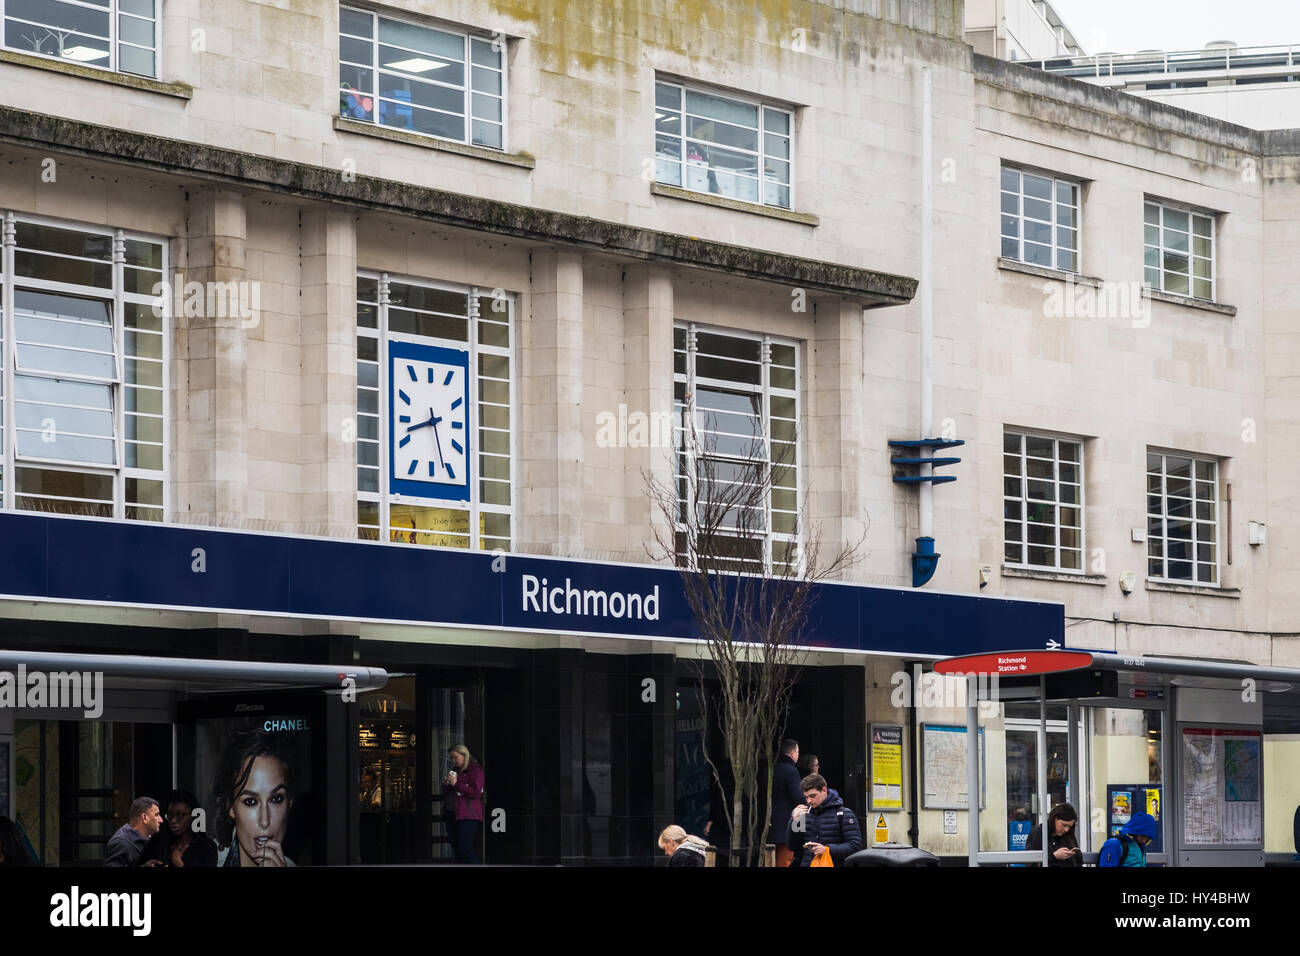 Richmond Town Centre in the South West of London, England, U.K. - Stock Image